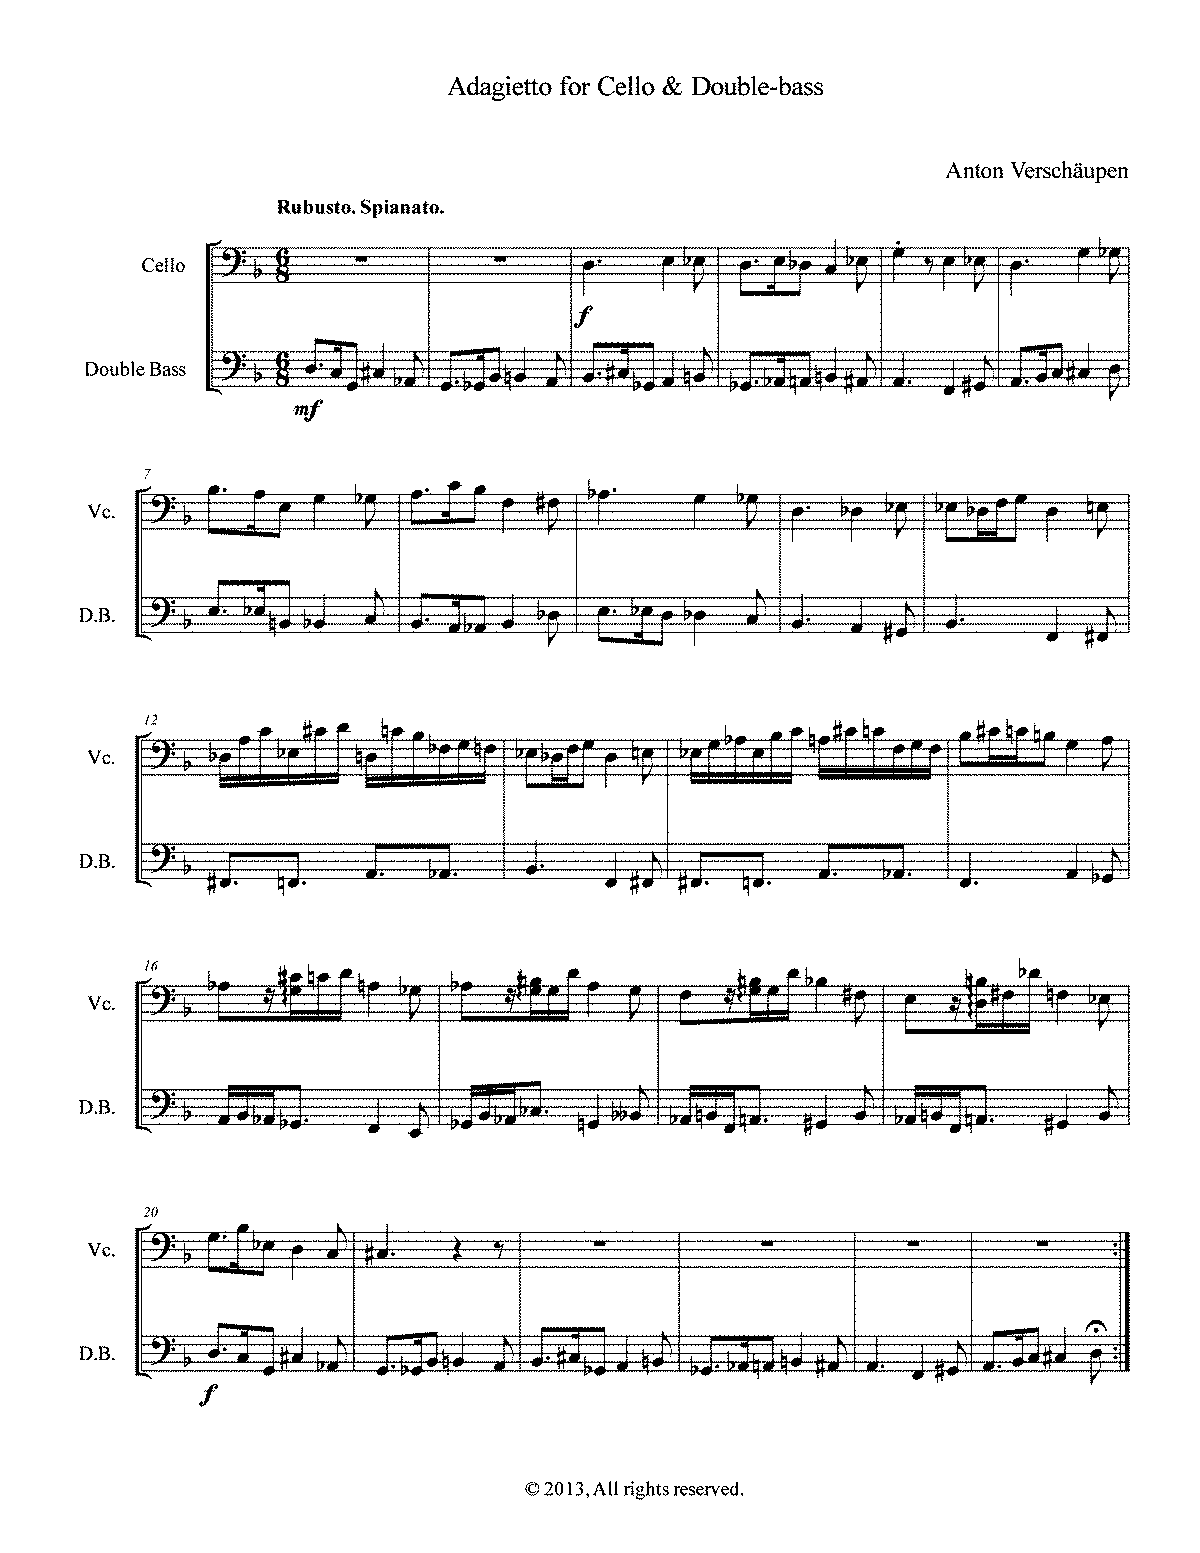 PMLP434548-Adagietto for Cello & Double-bass by Anton Verschäupen.pdf